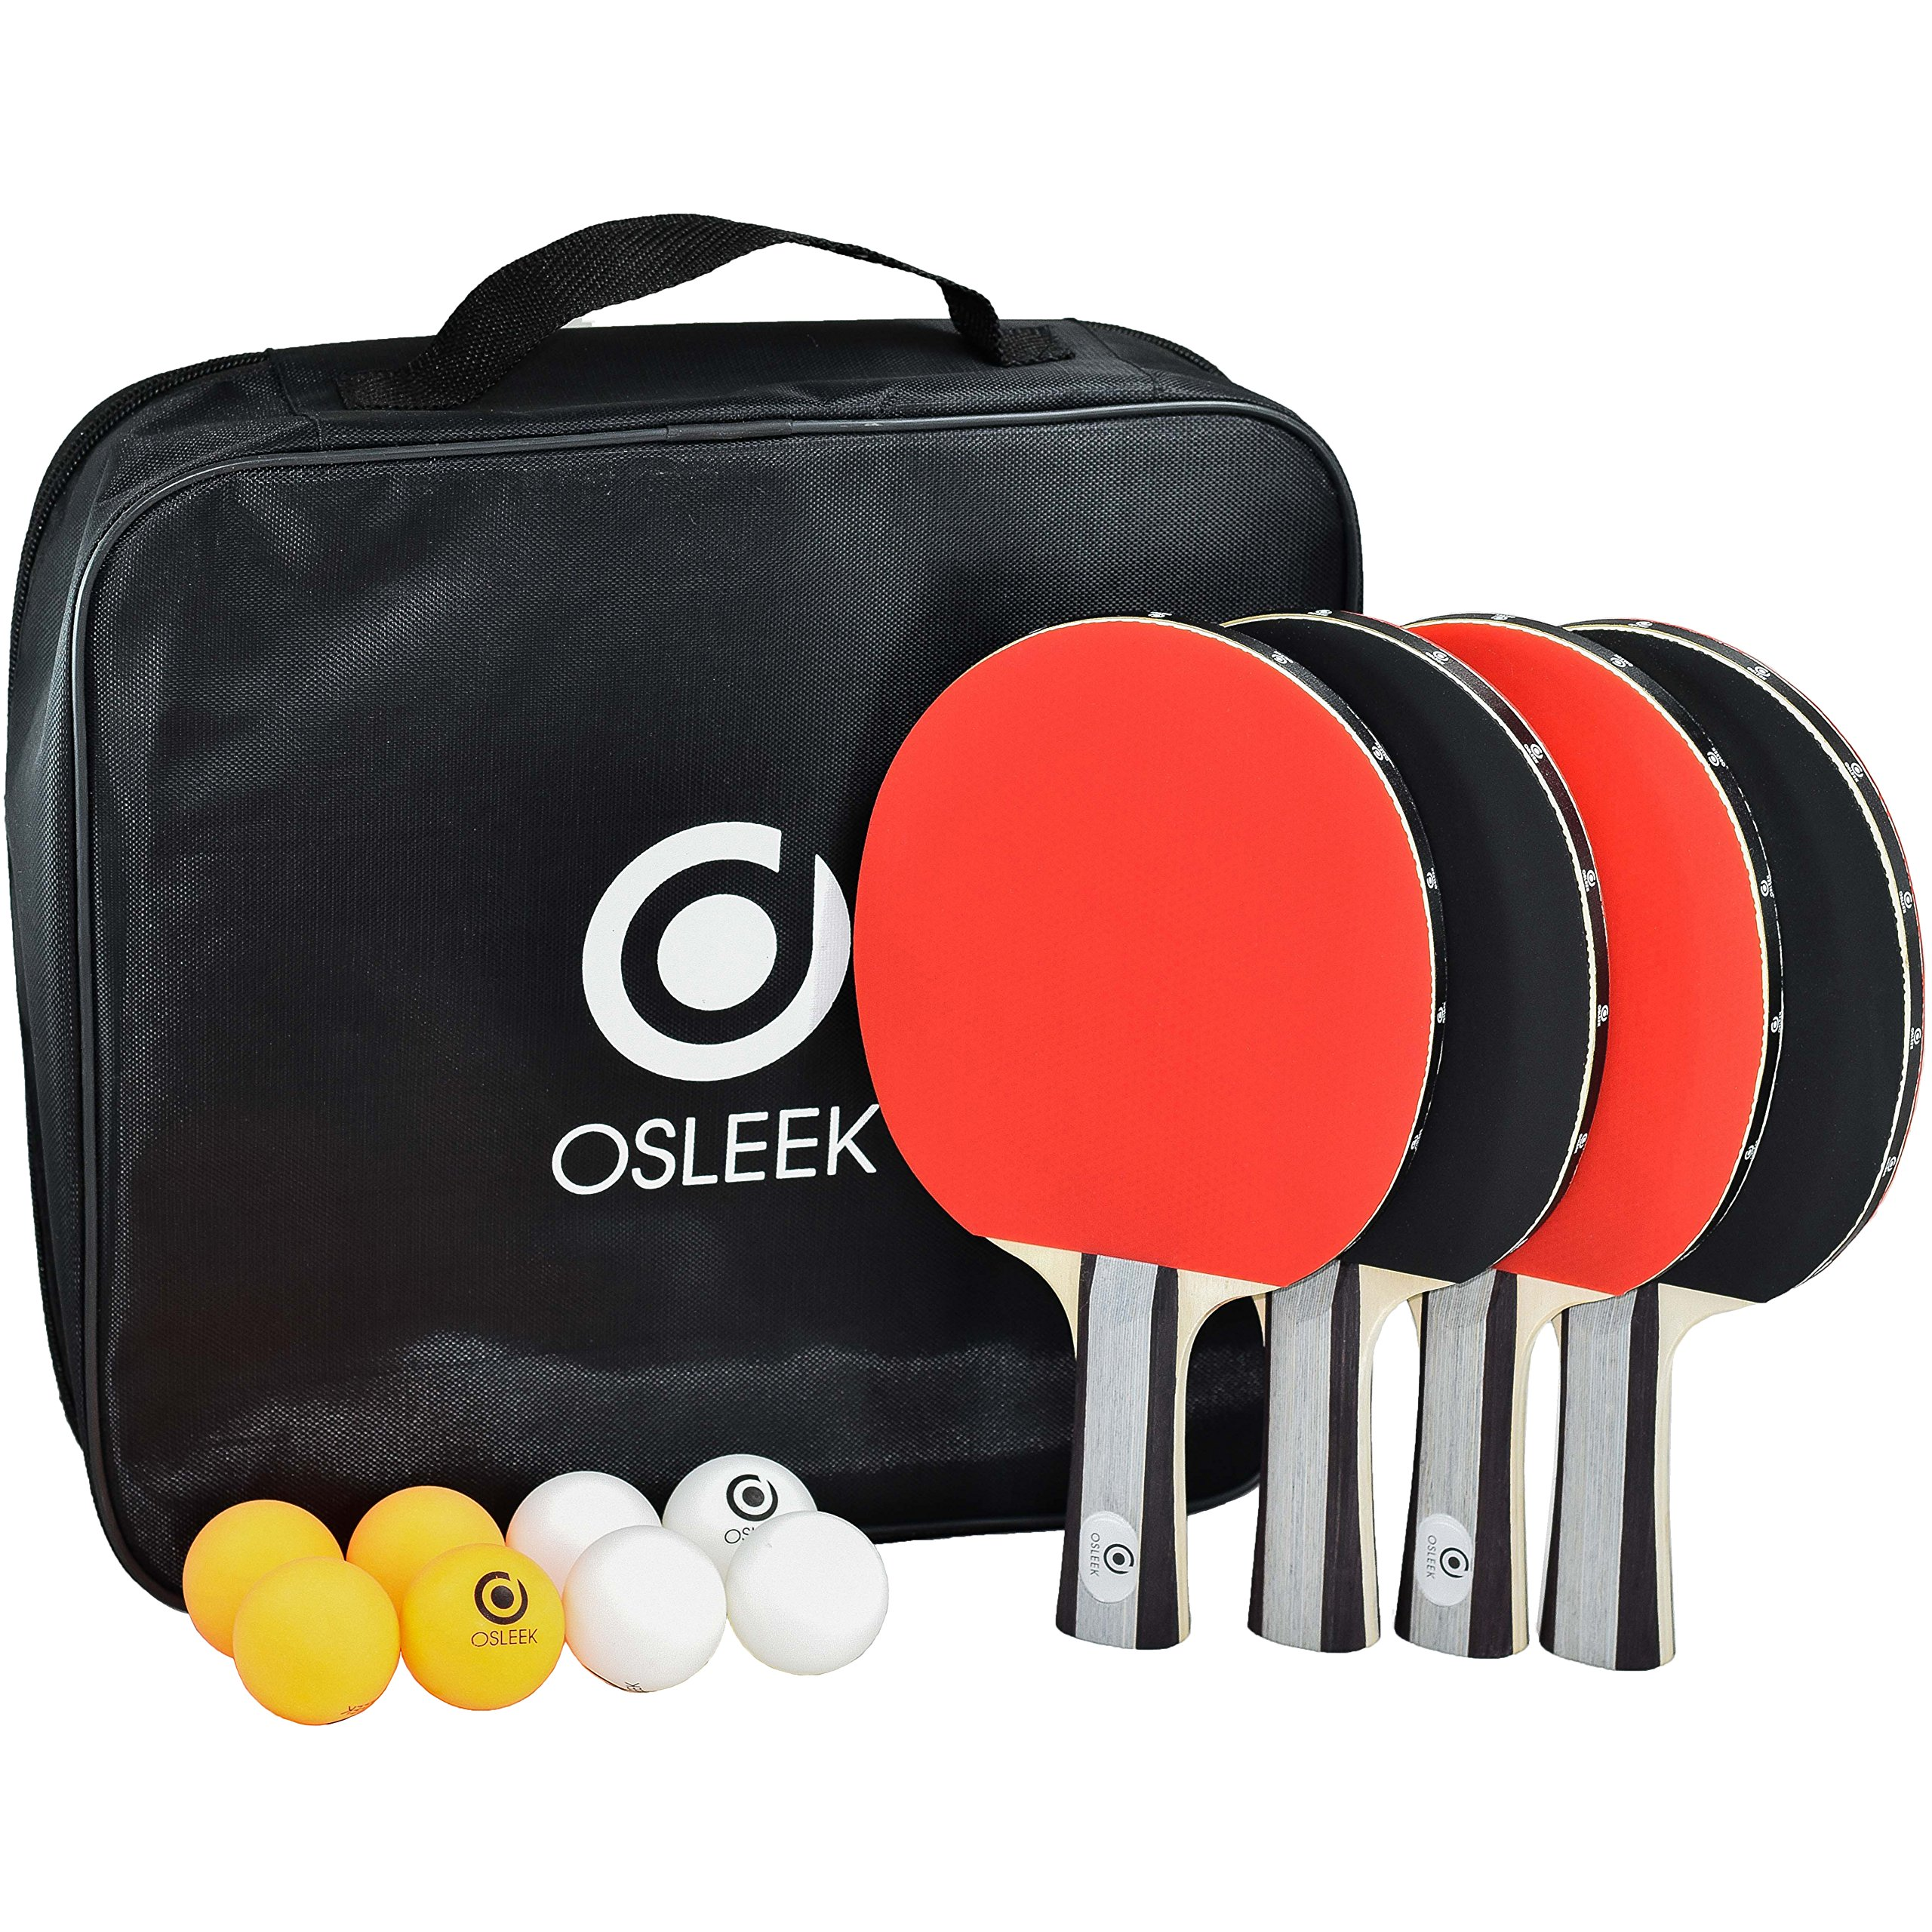 Osleek Ping Pong Paddle Set - 4 Rackets 8 Balls Professional/Recreational Table Tennis Bundle | Durable 5 Layer Blade, Performance Rubber for Control, Spin & Speed | Packed in Protective Travel Case by Osleek